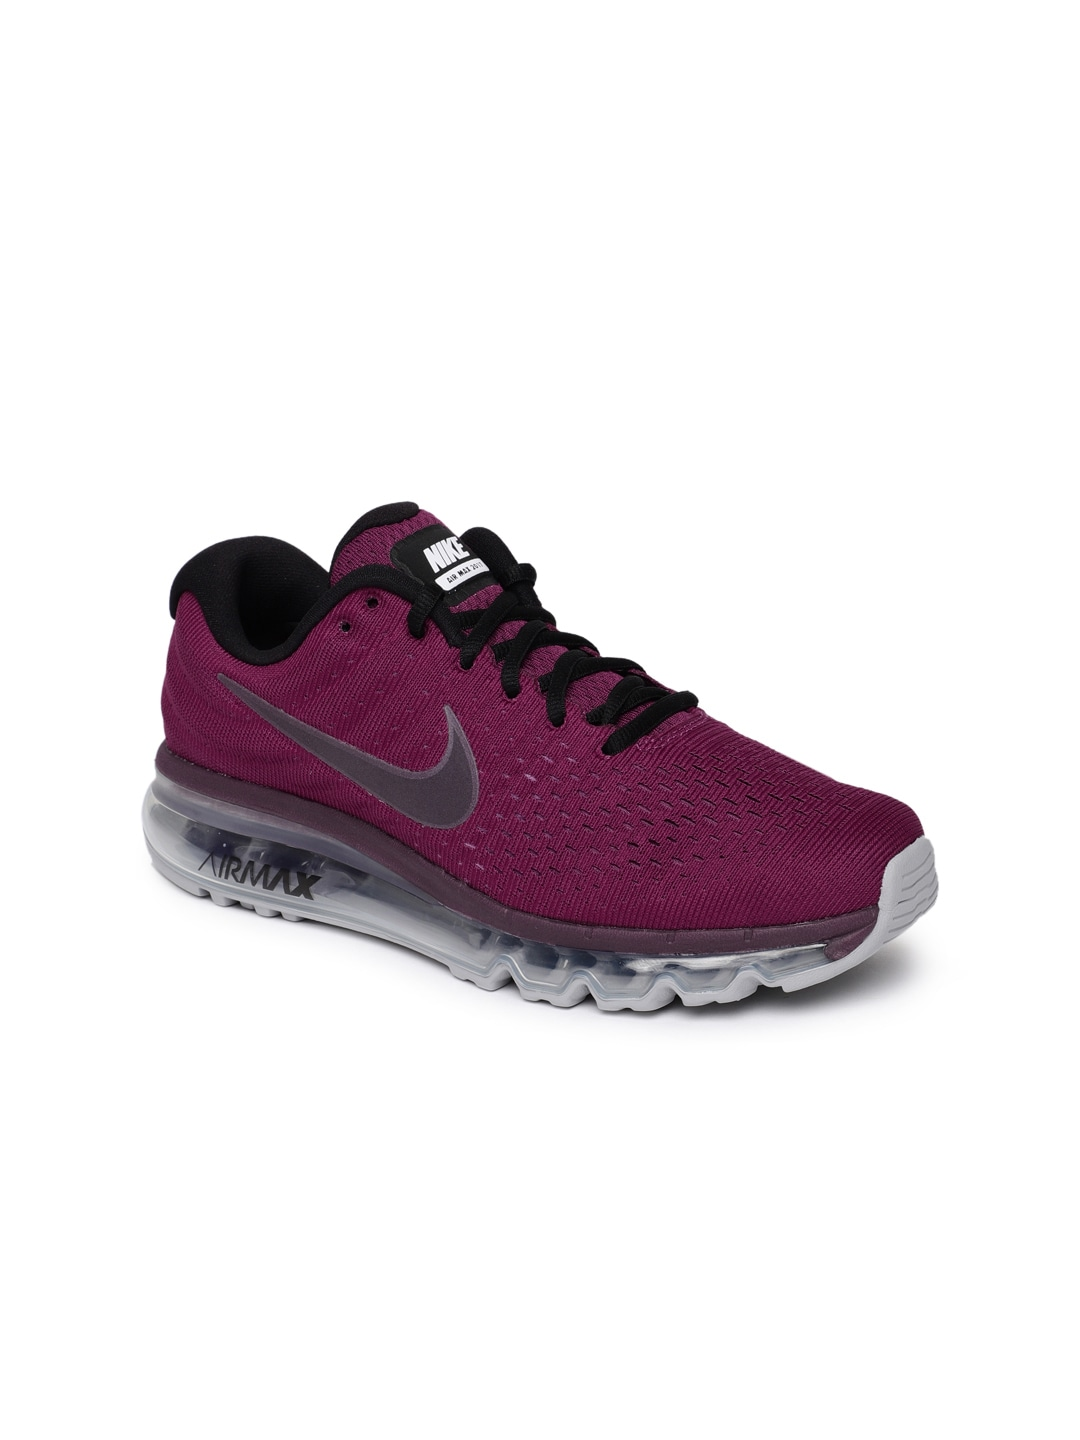 buy online 6a372 22c9c Nike Air Max Shoes - Buy Nike Air Max Shoes Online for Men